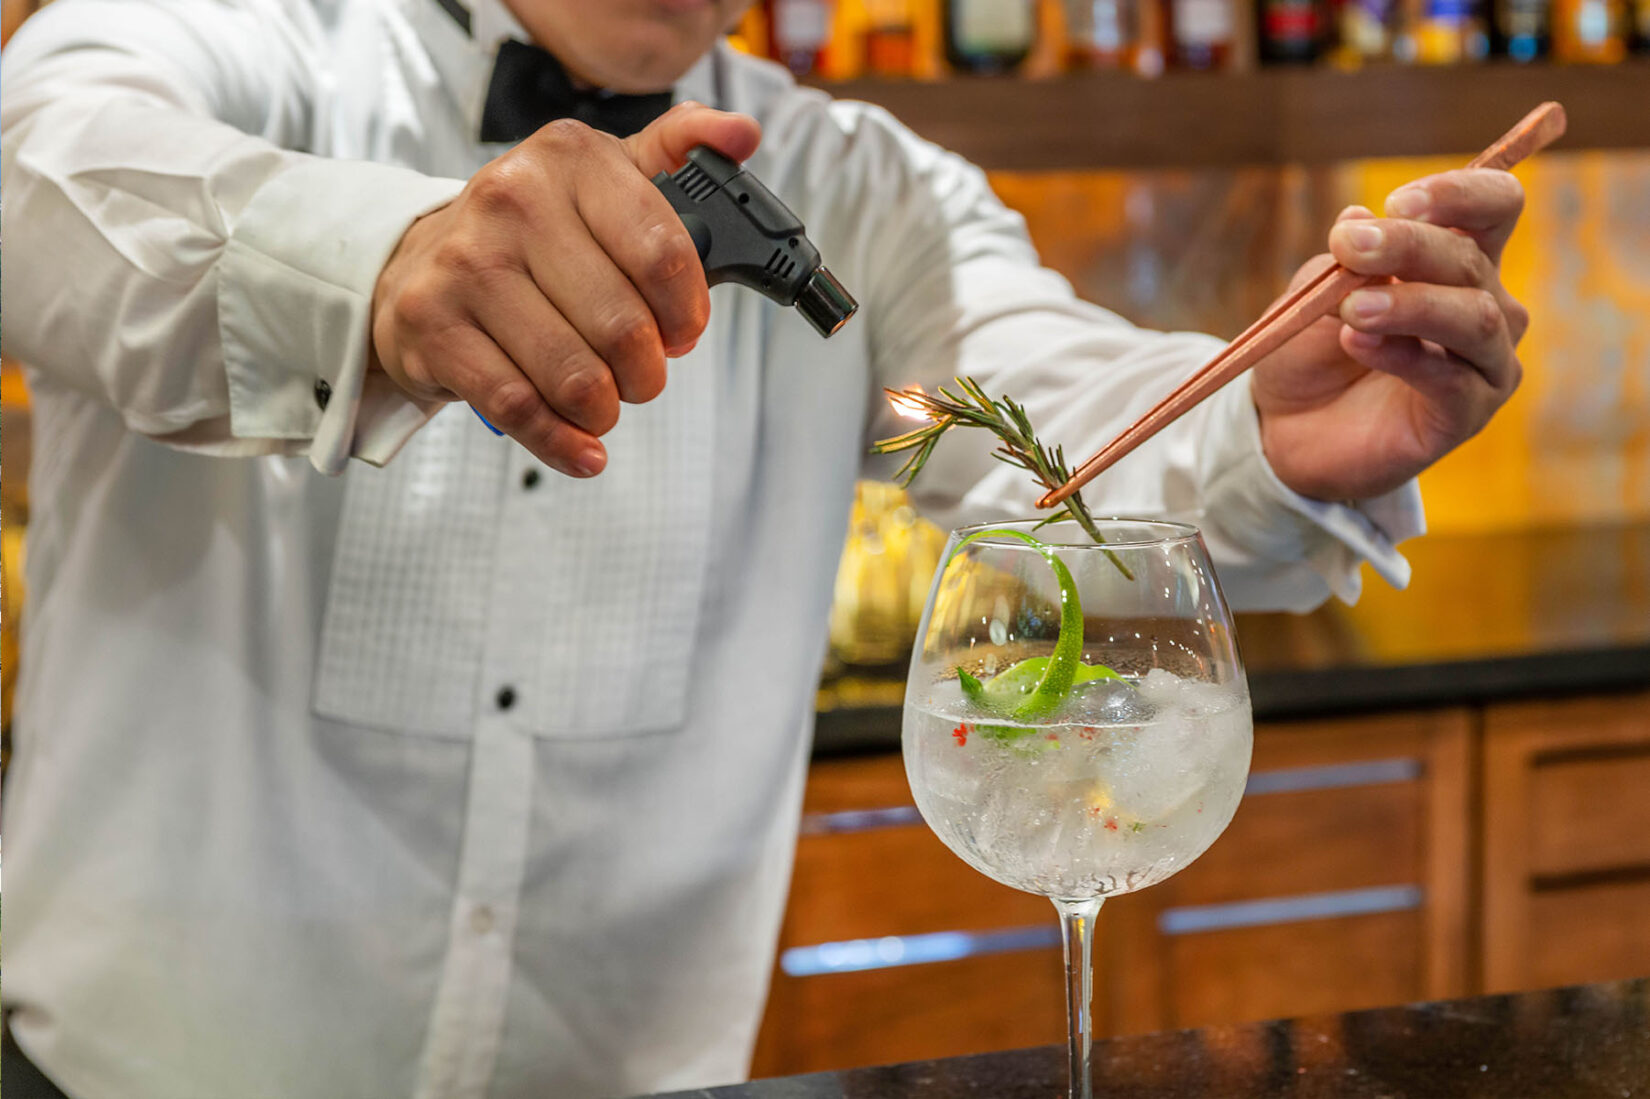 Omni Bar Bartender Lighting Rosemary on Fire to Make Drink